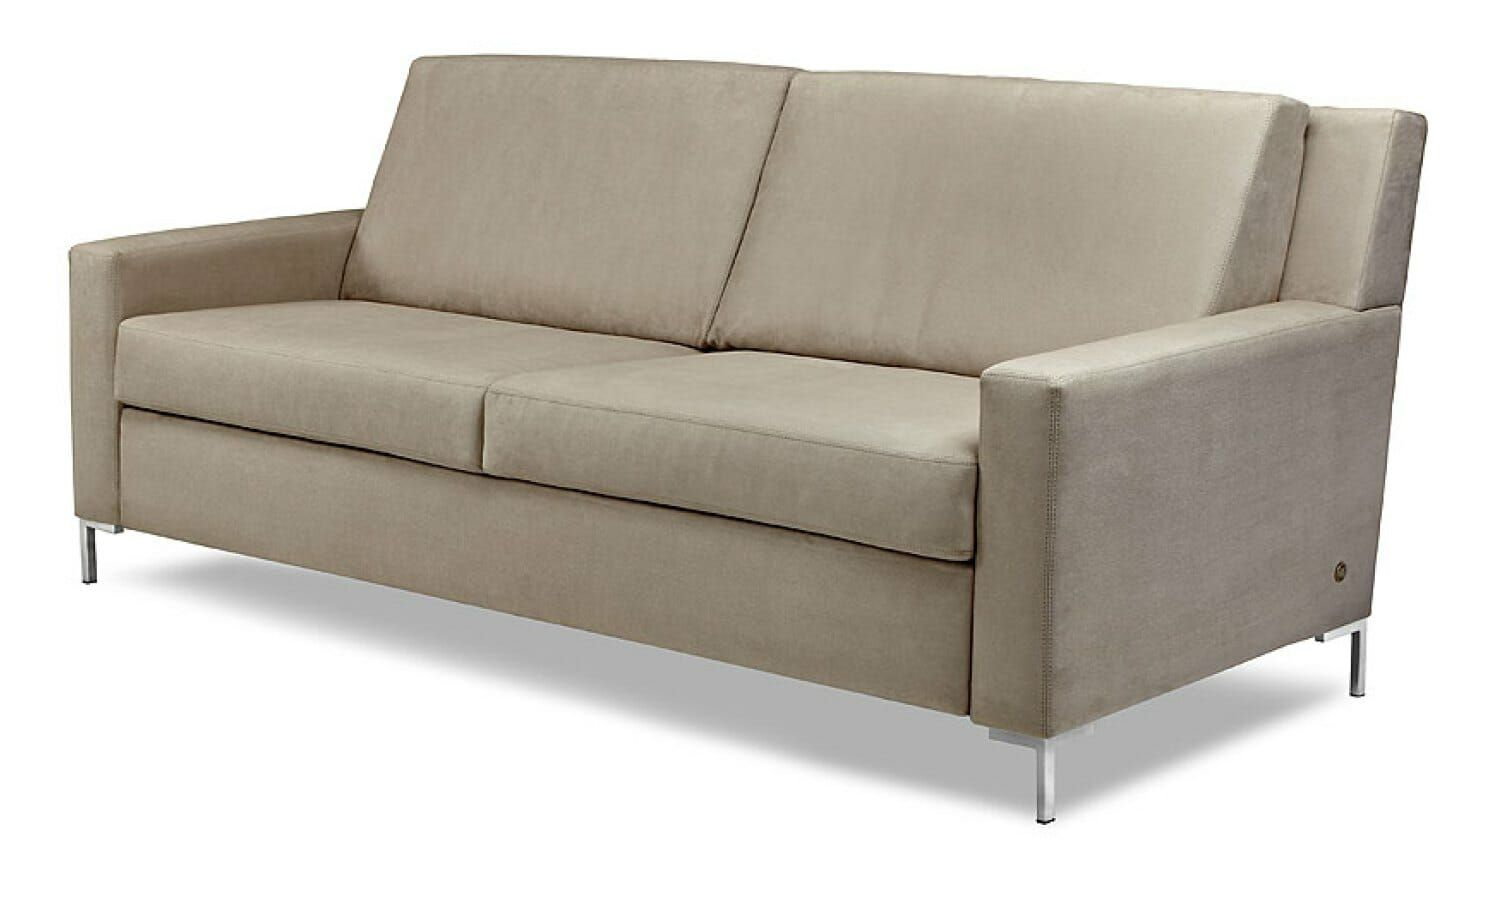 Bettsofa Chesterfield Wonderful Sleeper Sofas Ideen Verstecken Gemütliche Möbel Zum